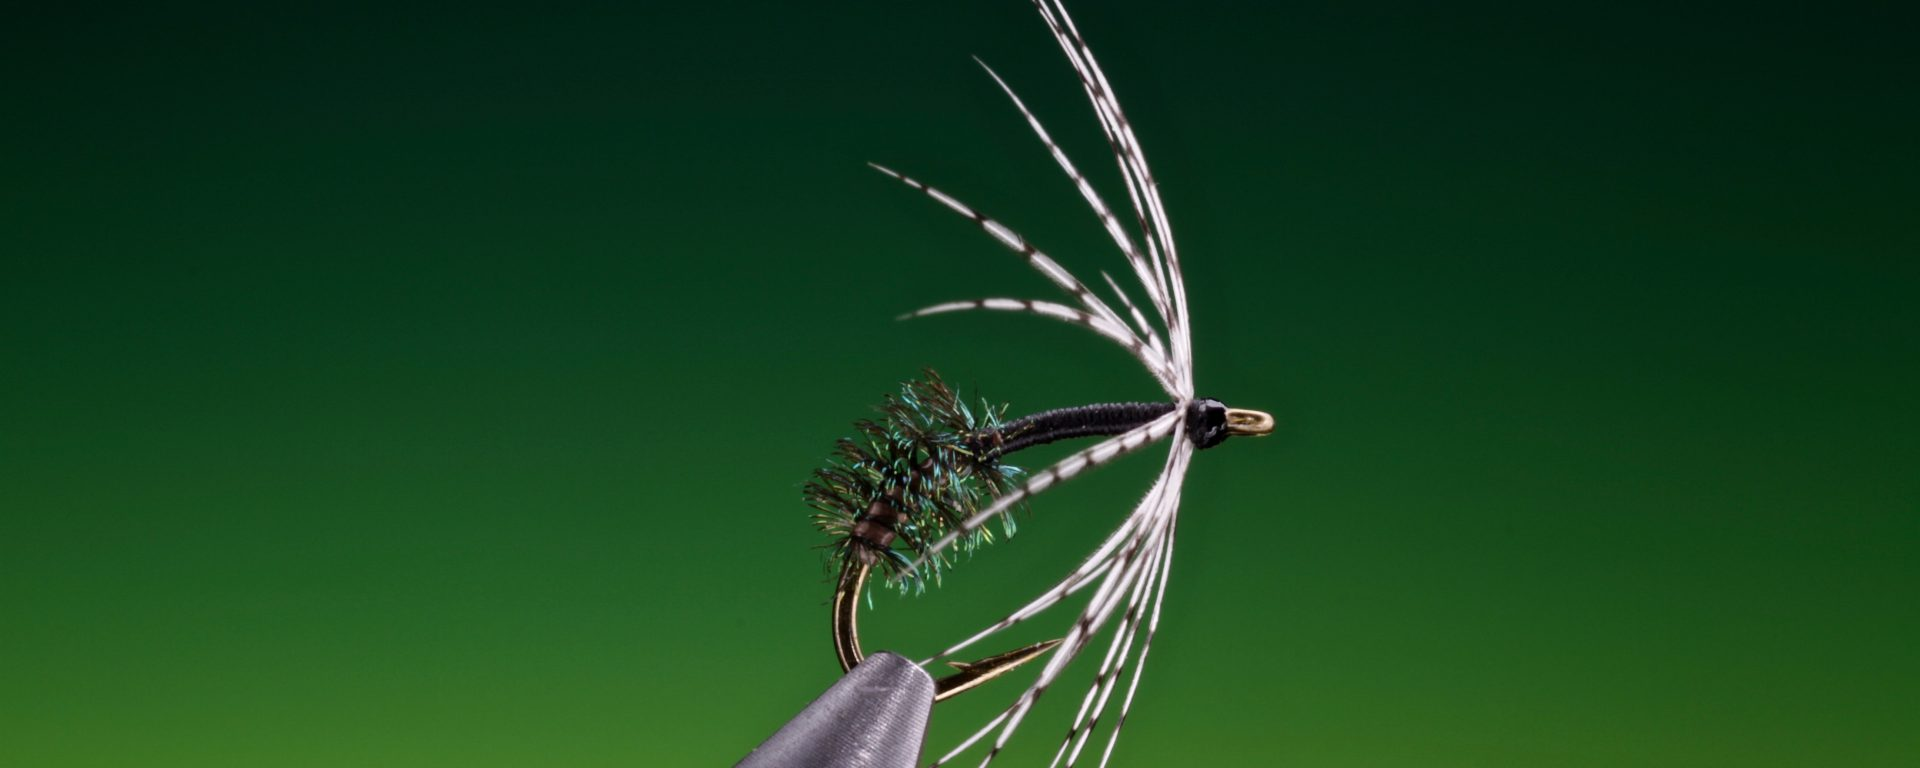 fly tying Peacock and partridge spider wet fly